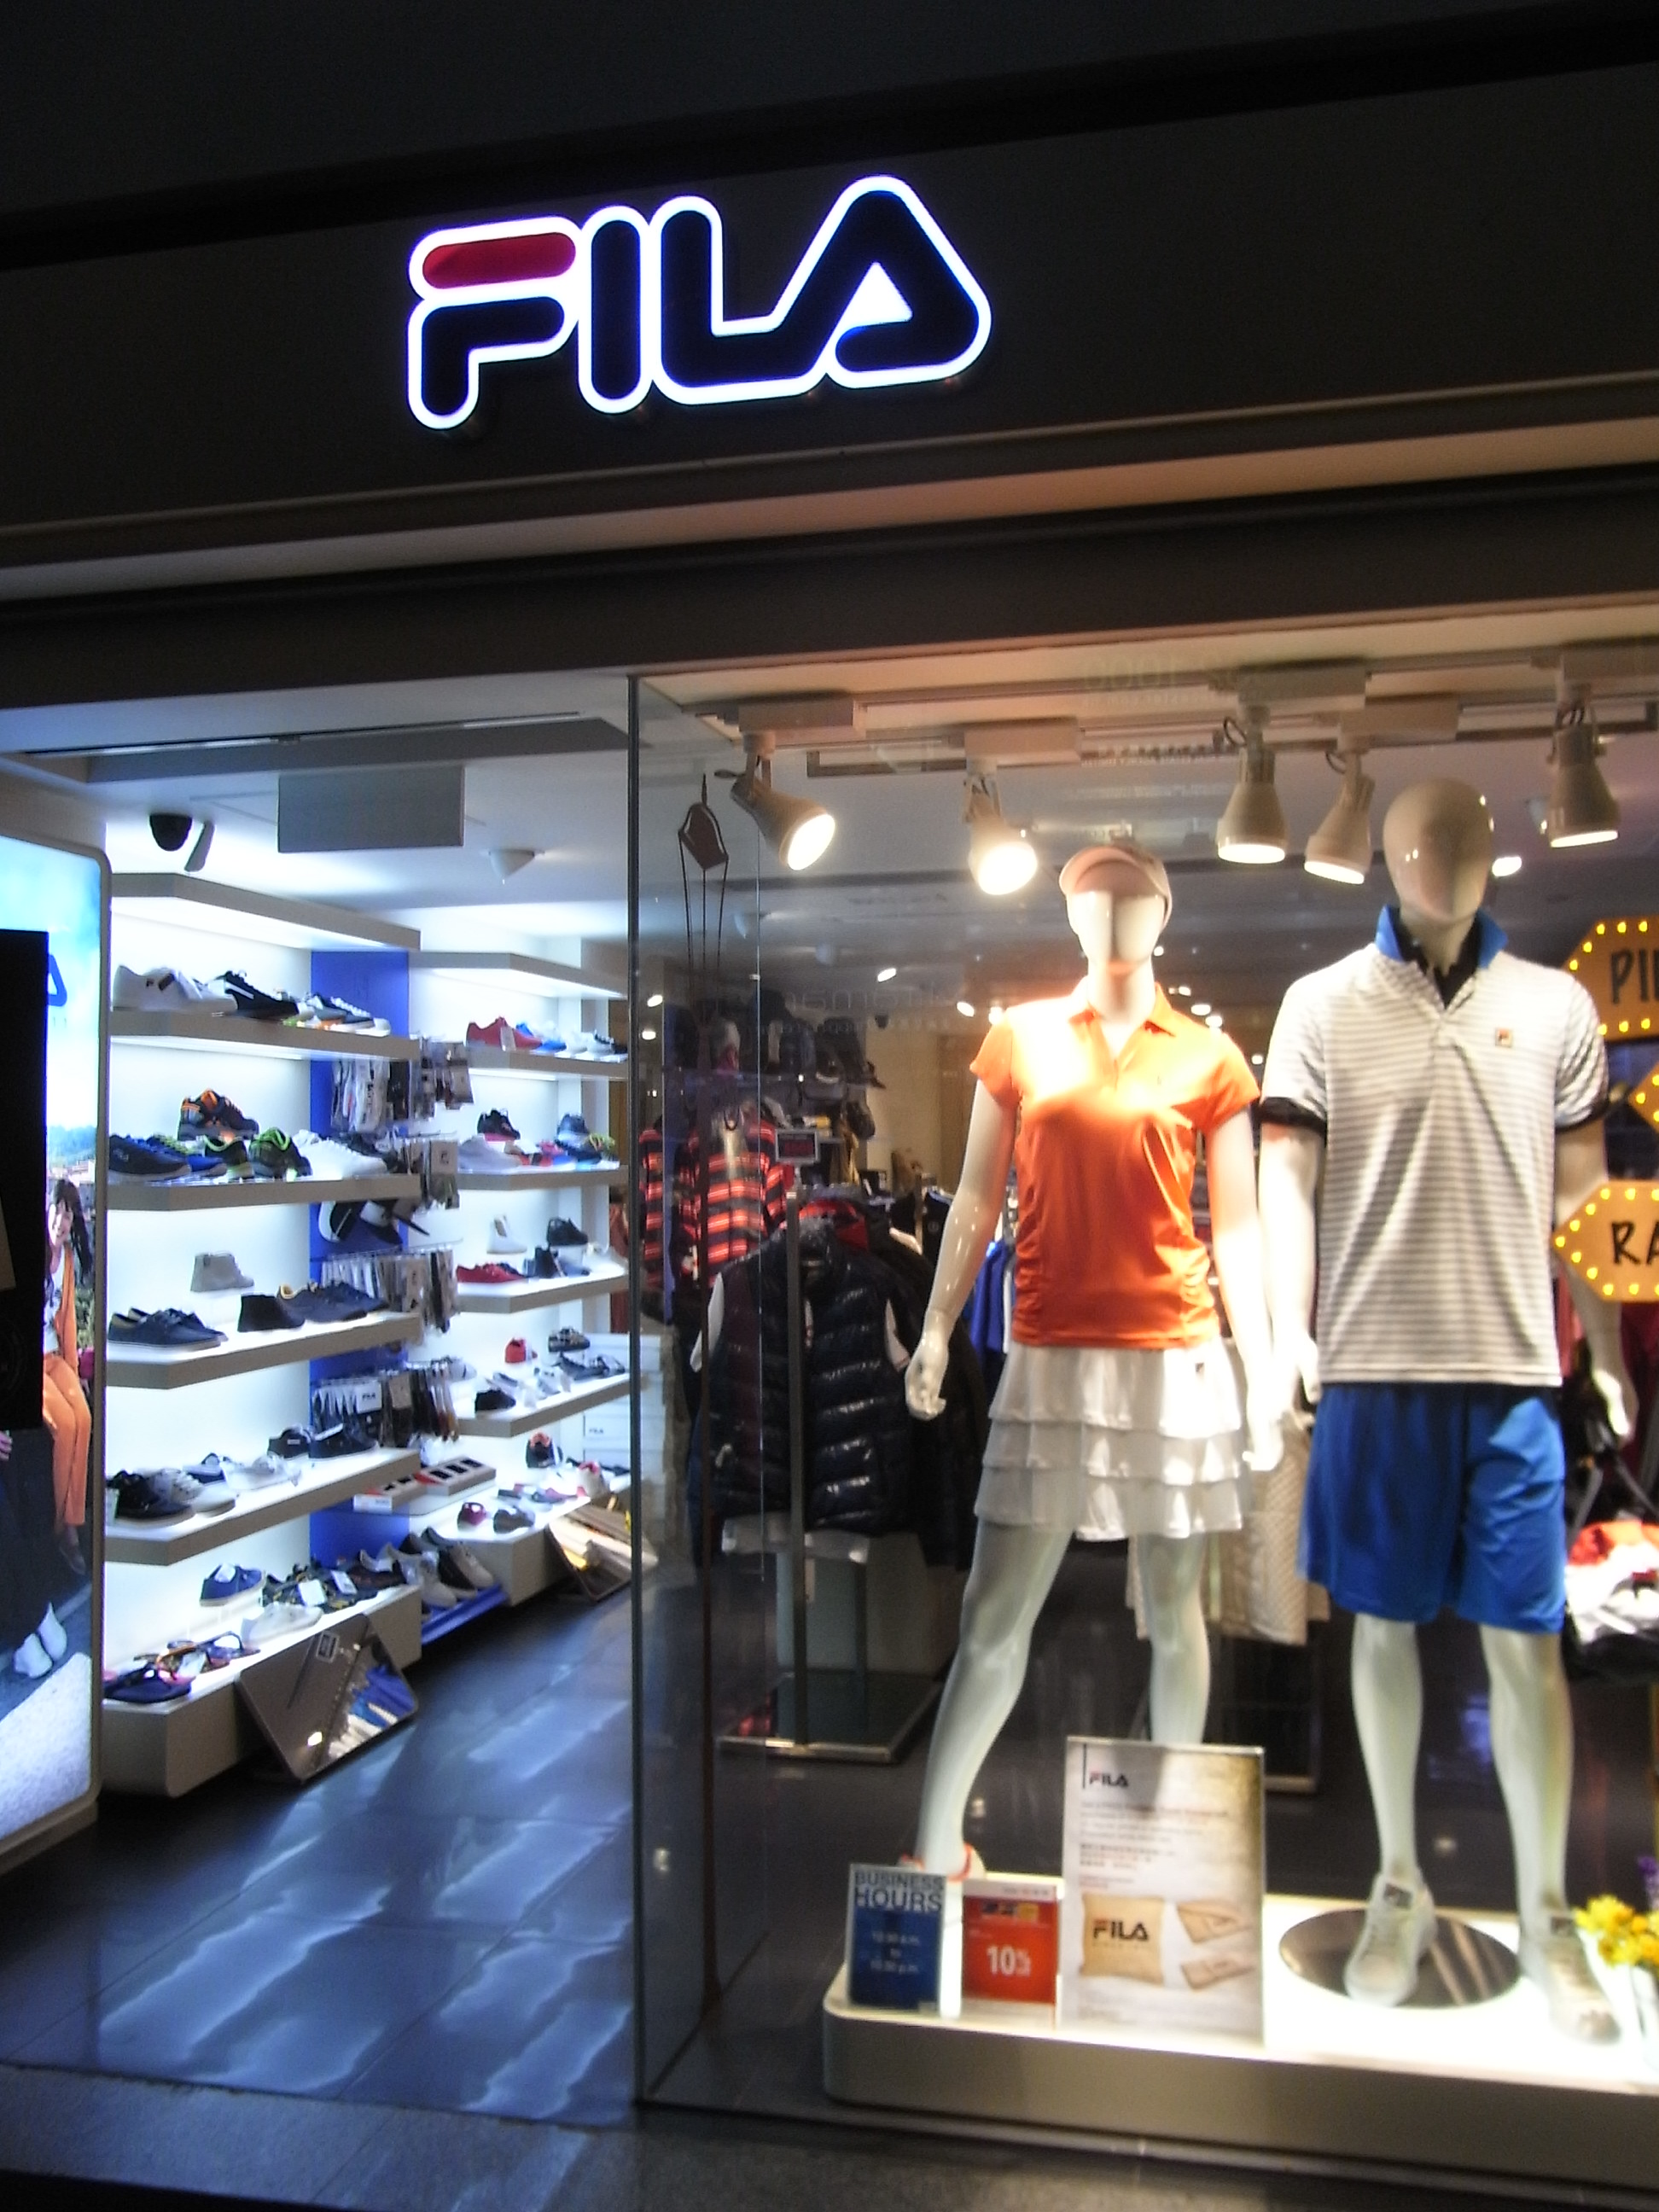 fila shopping Sale 63c73b76d5c2